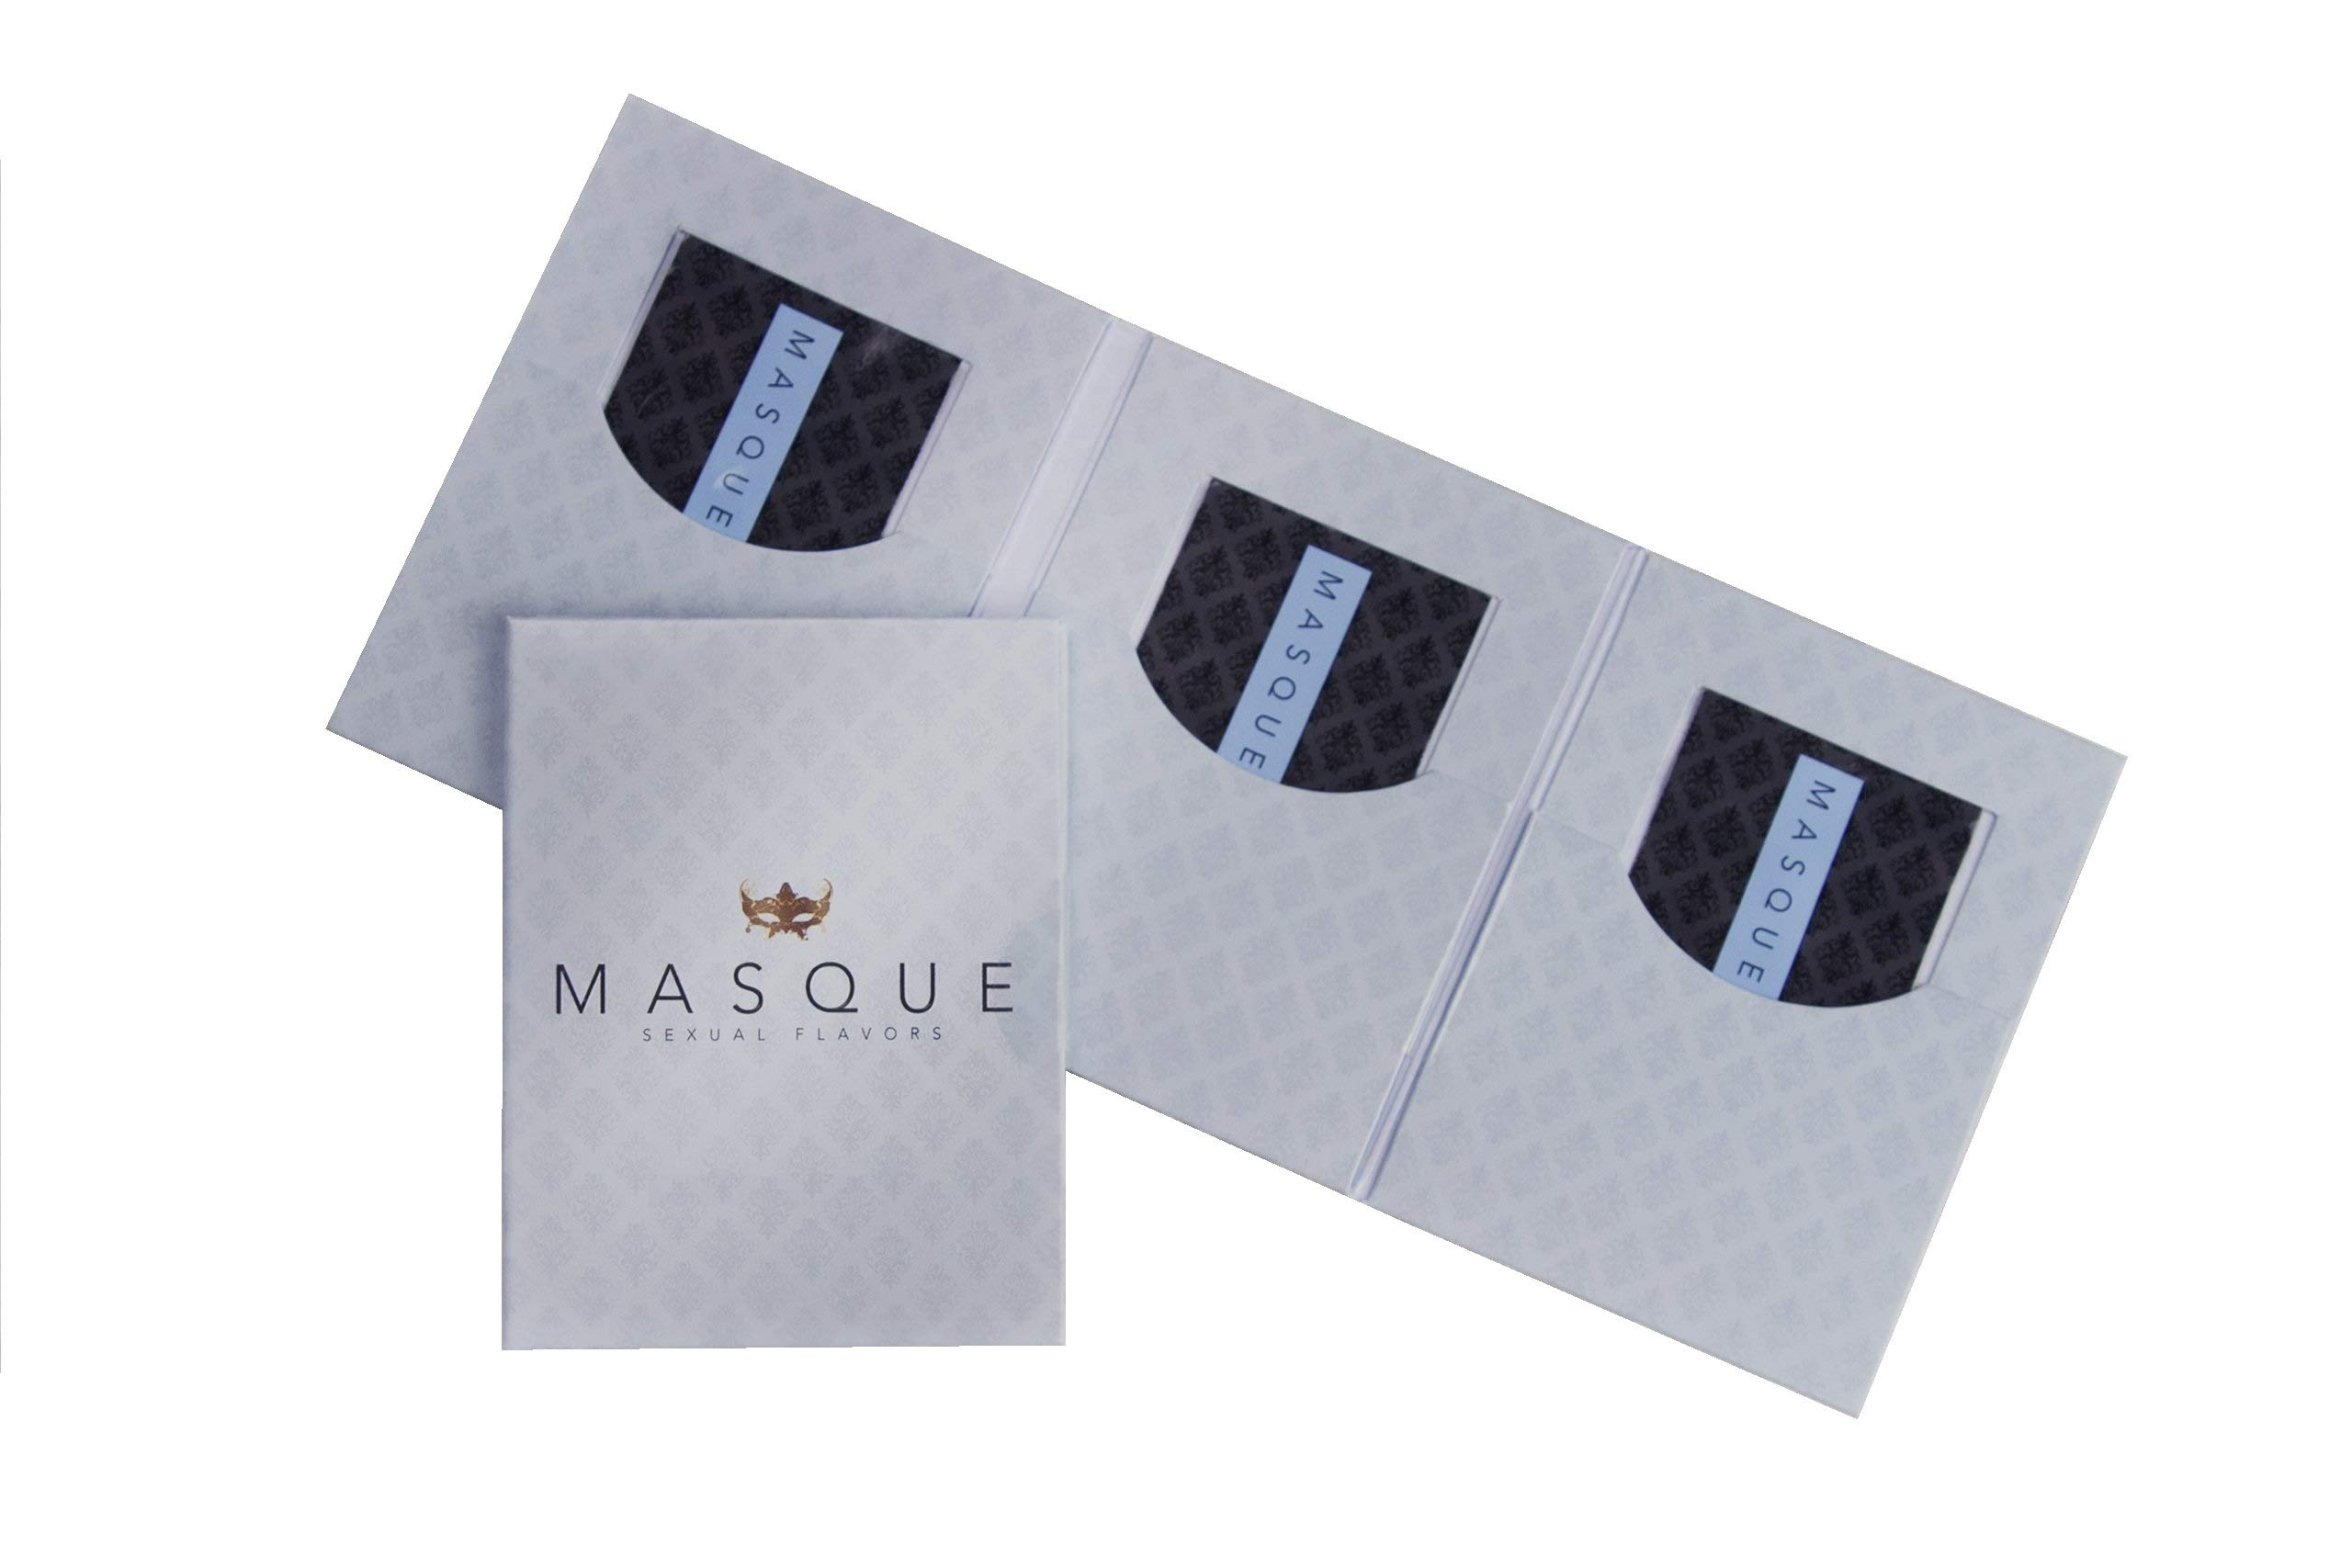 Masque Mango Sexual Flavors Singles Wallet - Total of 3 Strips by Masque International LLC